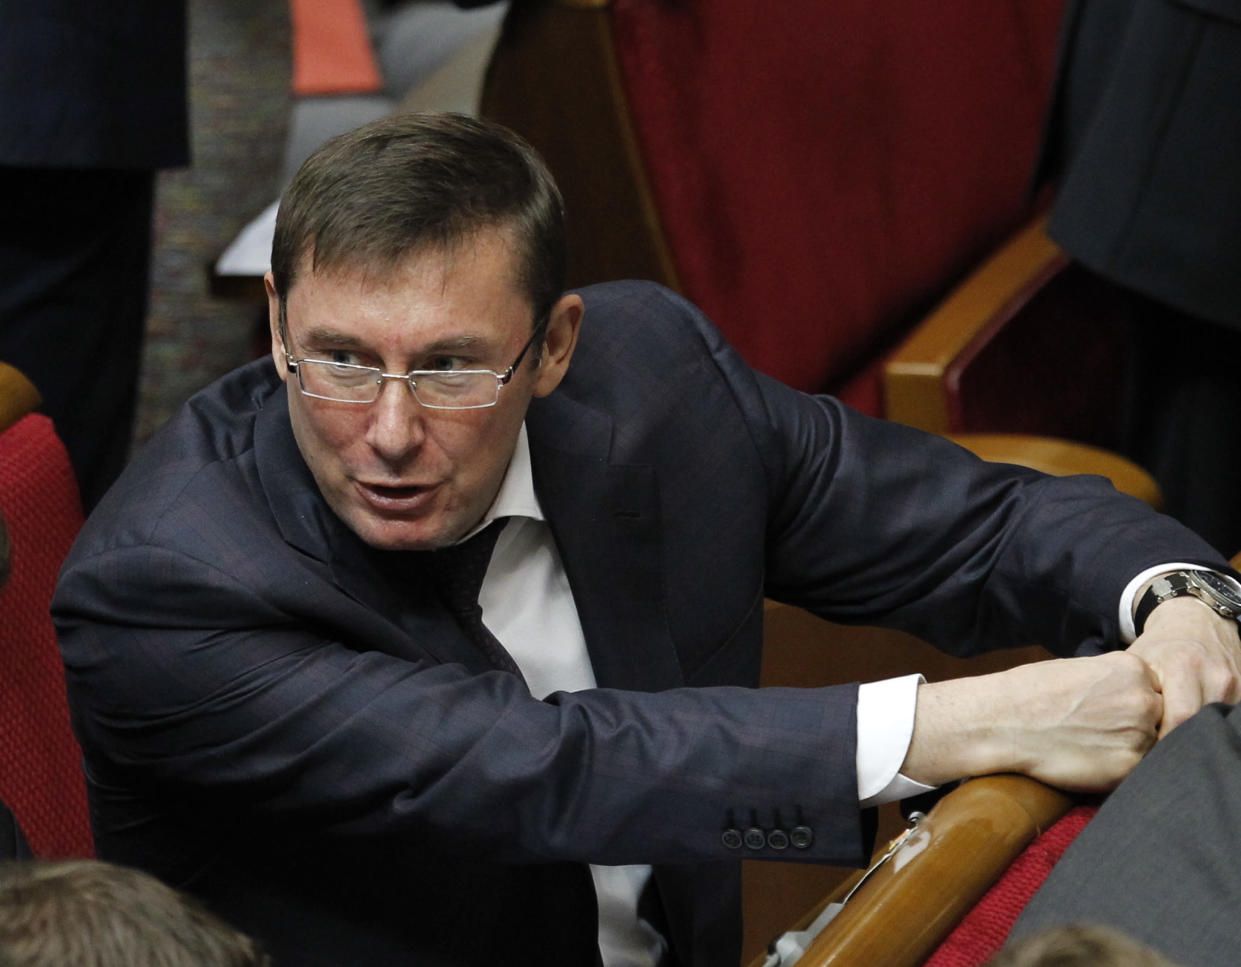 Yuri Lutsenko at a parliamentary session in Kyiv, Ukraine, in 2016. (Photo: Sergei Chuzavkov/AP)